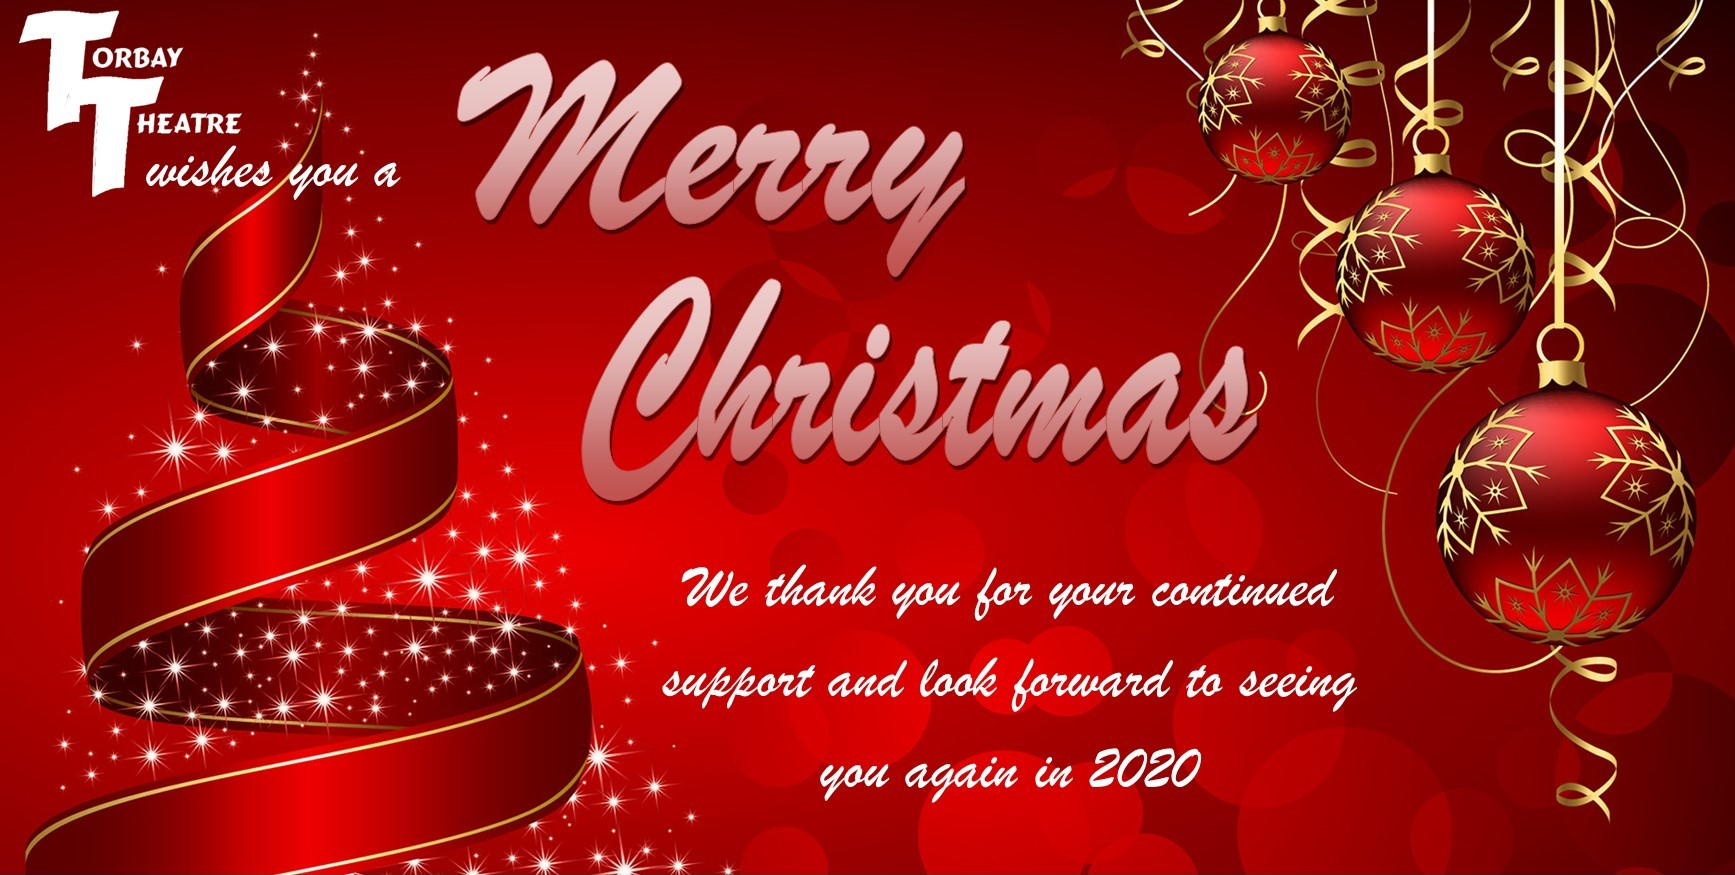 Torbay Theatre wishes you a  Merry Christmas   We thank you for your continued support and look forward to seeing you again in 2020